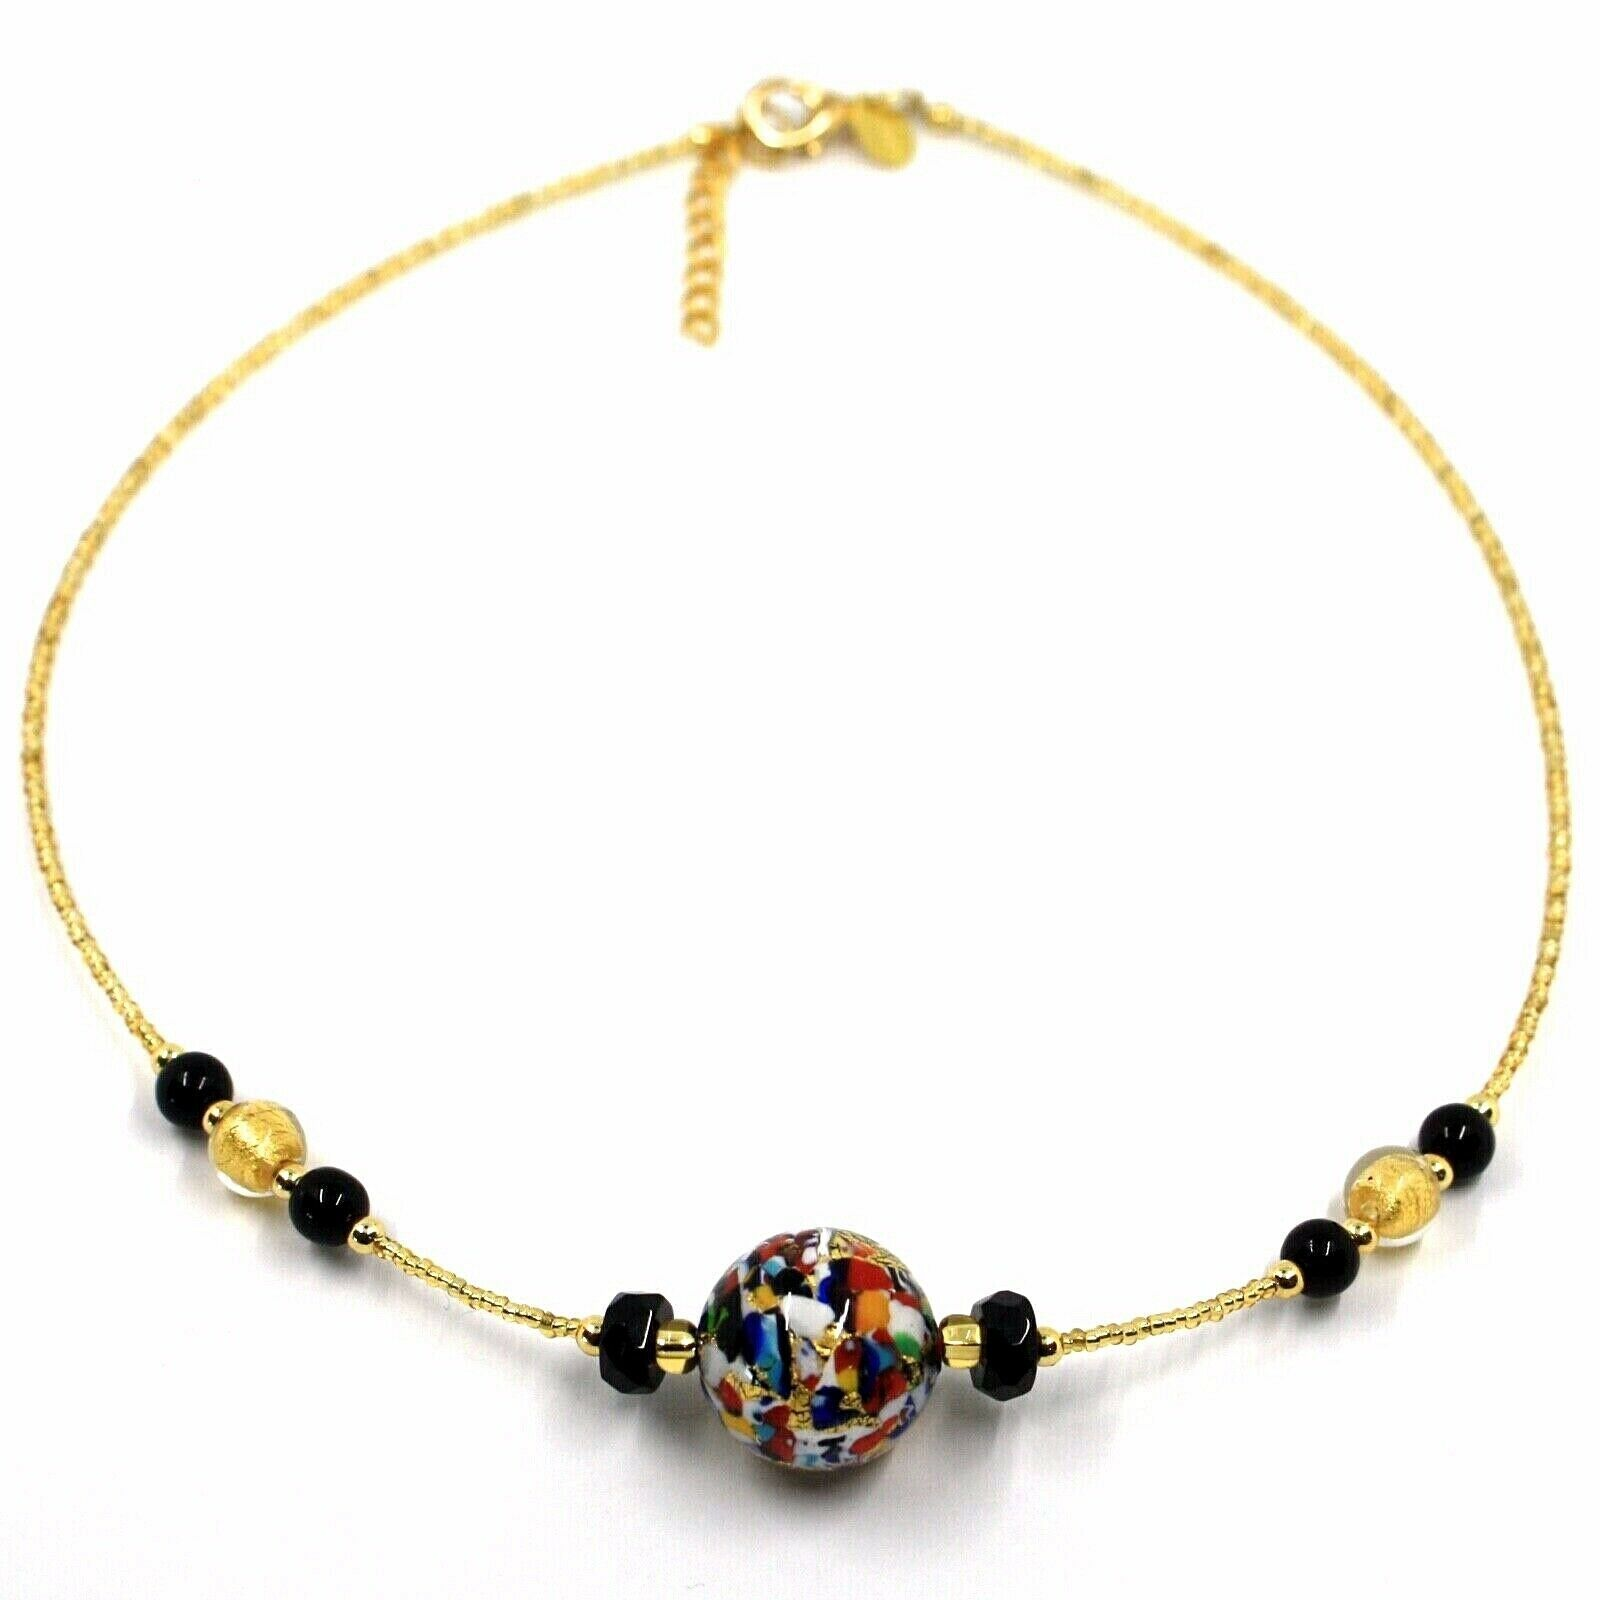 NECKLACE MACULATE MULTI COLOR MURANO GLASS BIG SPHERE, GOLD LEAF, ITALY MADE